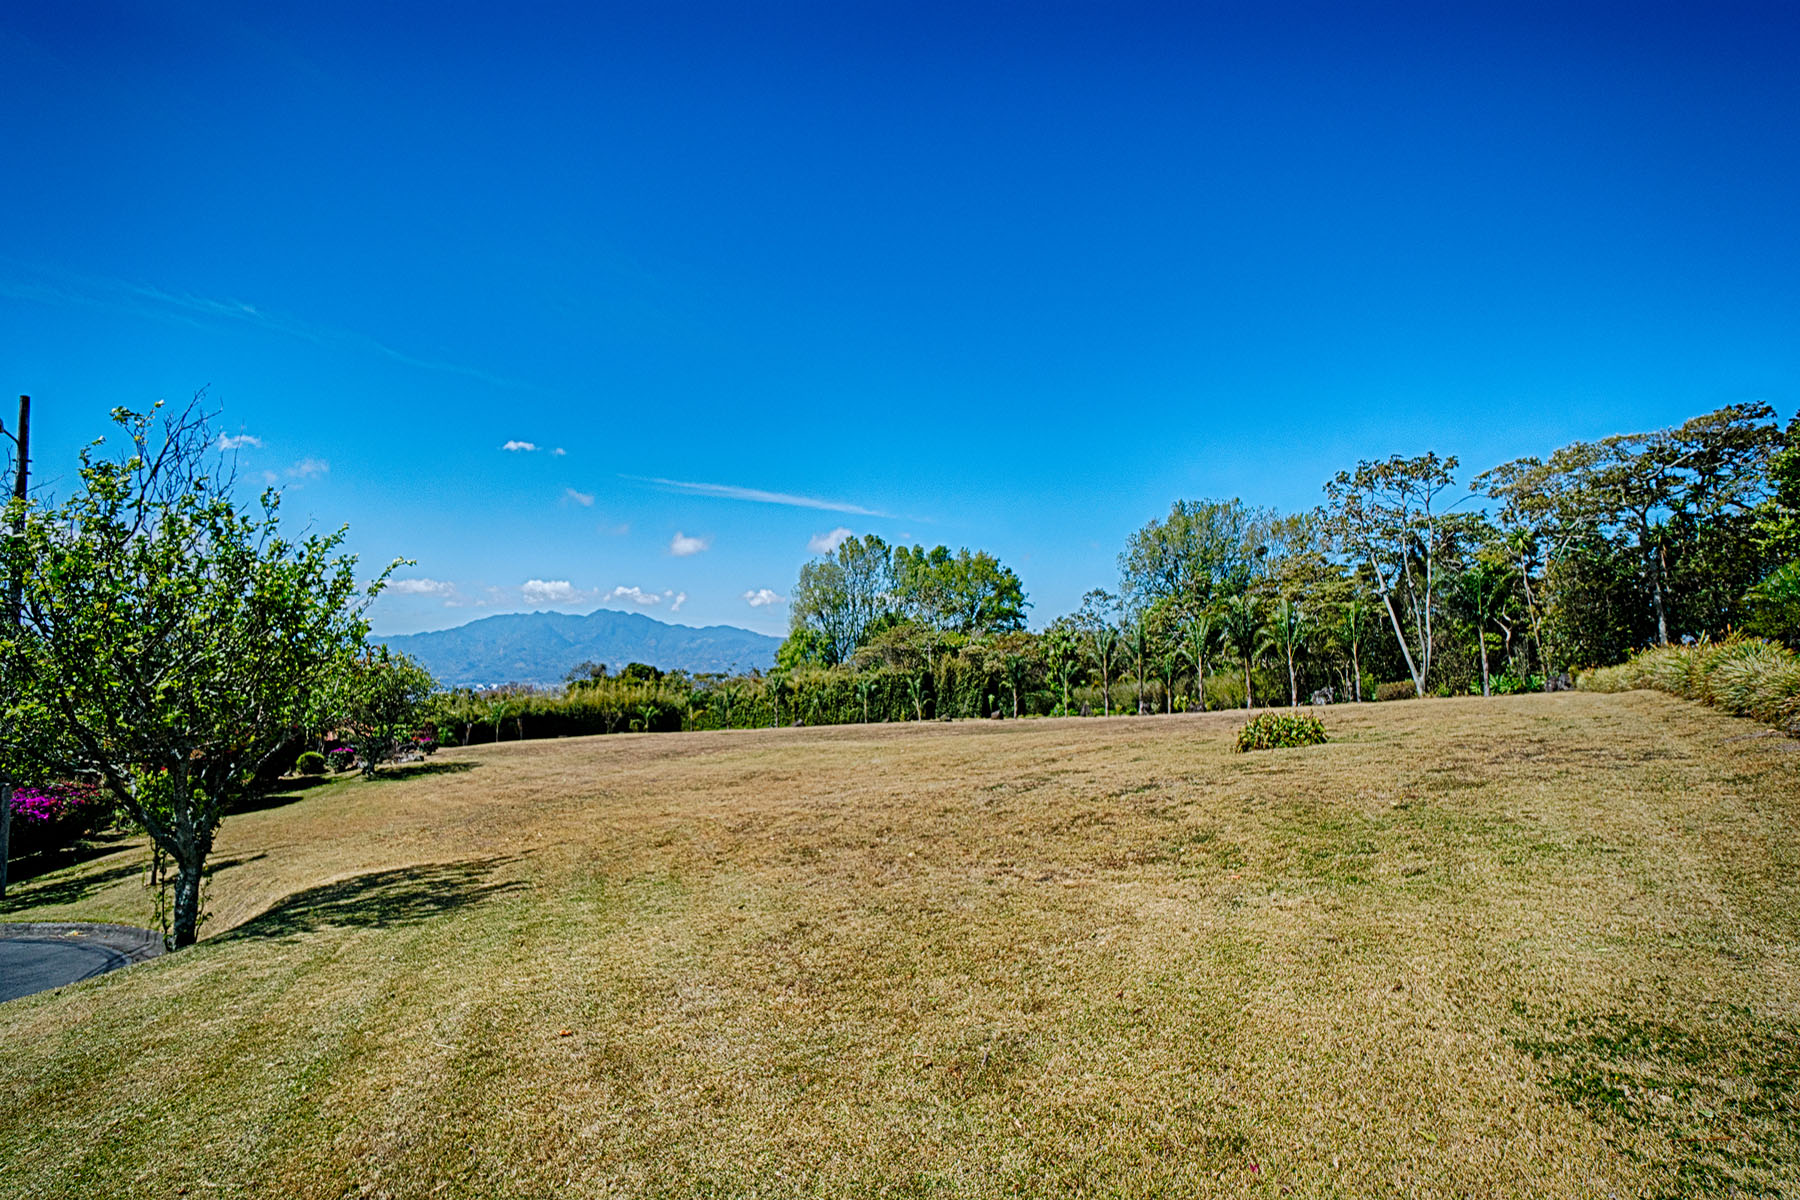 Land for Sale at LOTE CONDOMINIO SAN RAFAEL II San Rafael, Costa Rica